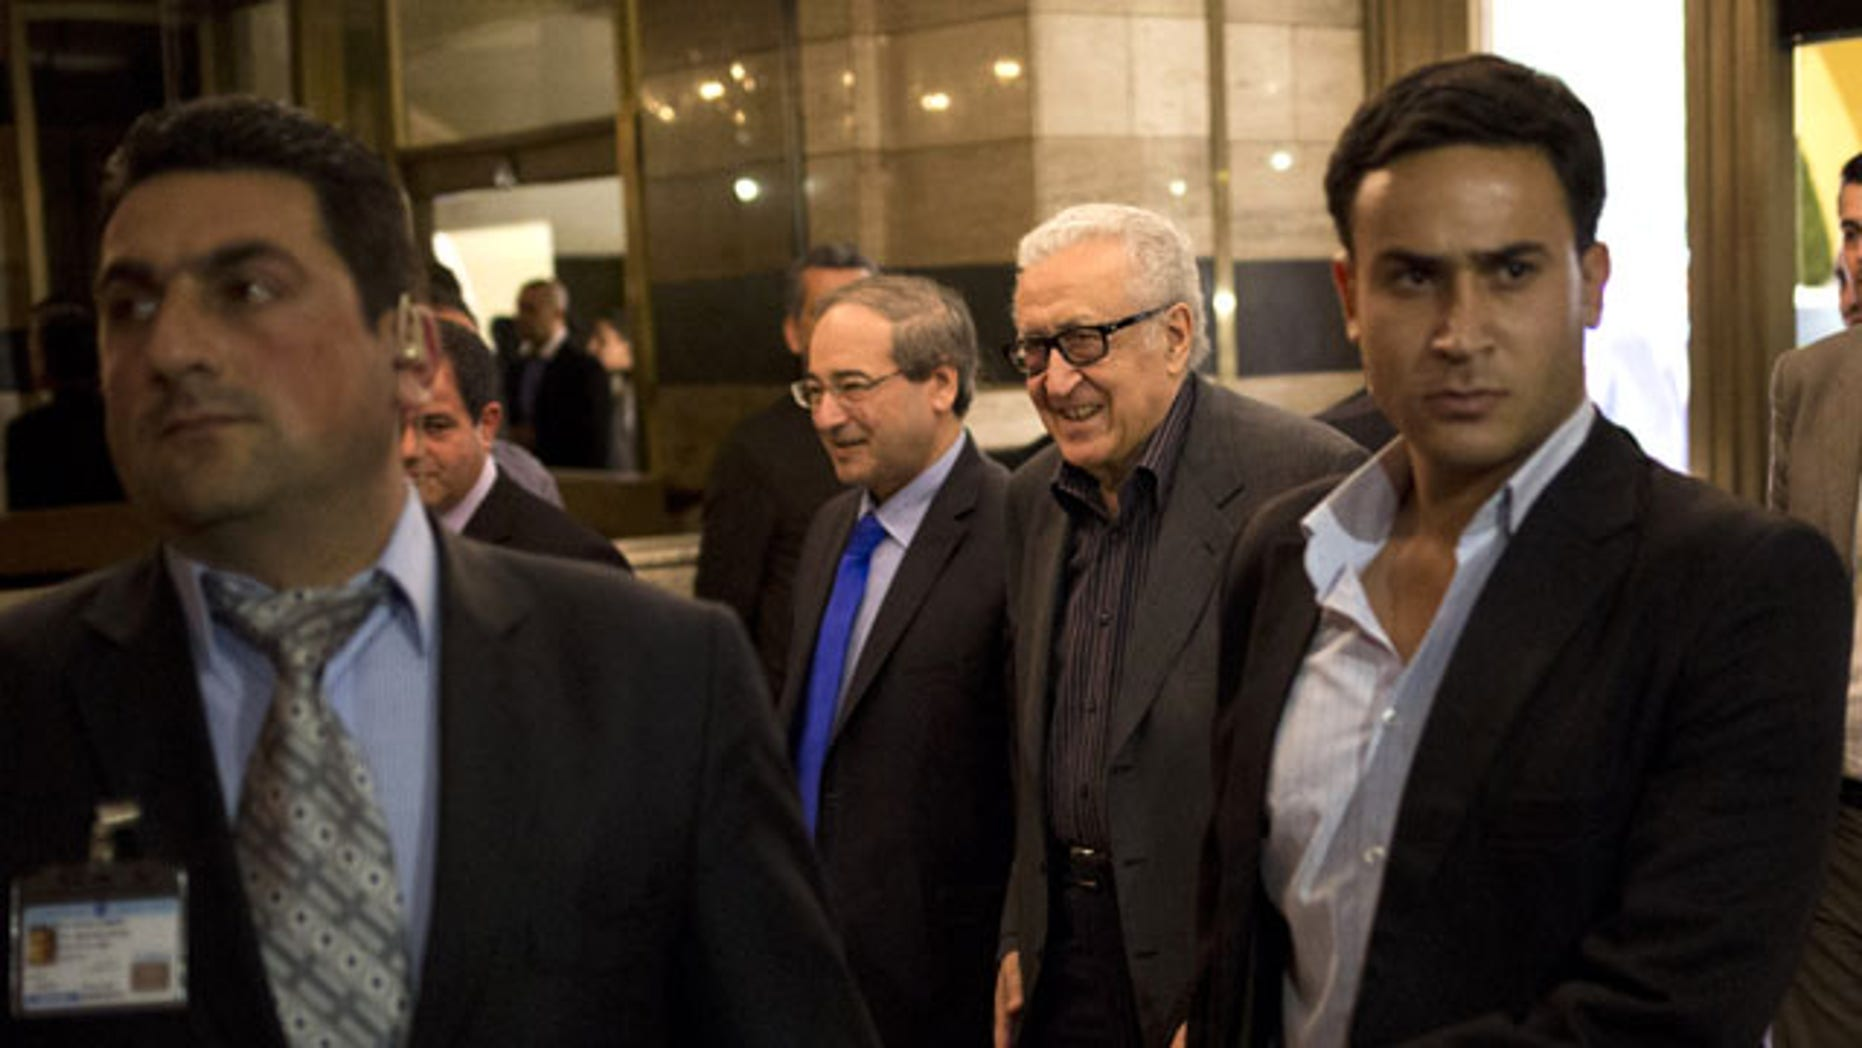 October 28, 2013: U.N.-Arab League envoy Lakhdar Brahimi, center right, and Deputy Syrian Foreign Minister Faisal Mekdad arrive to a hotel surrounded by security in Damascus, Syria. Brahimi is on his first trip to the country in almost a year. (AP Photo/Dusan Vranic)